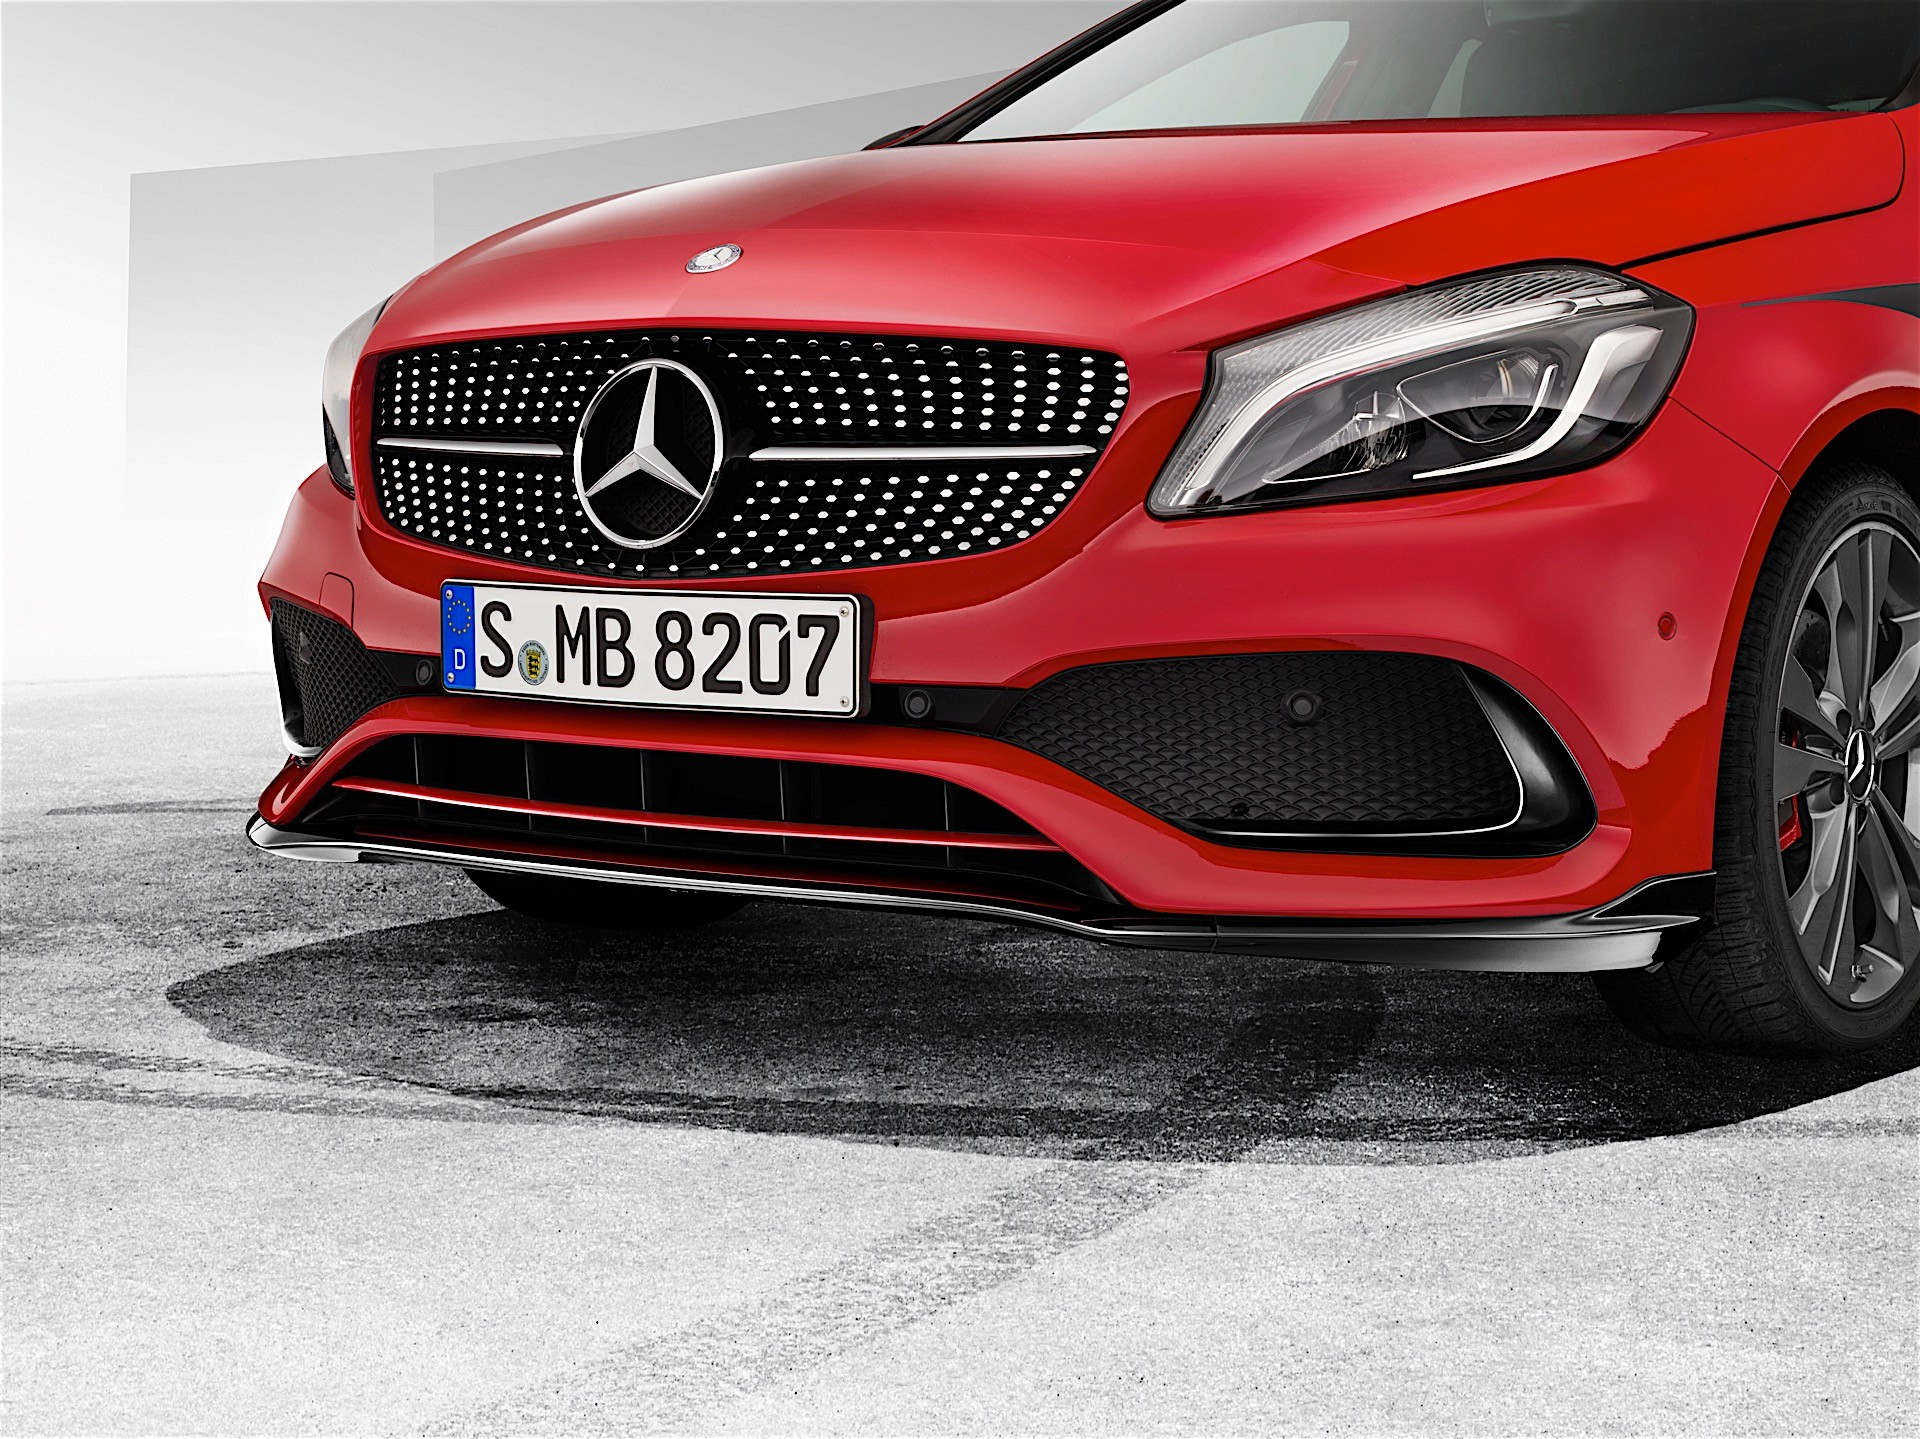 Mercedes-Benz Introduces AMG Body Kit for A-Class - autoevolution